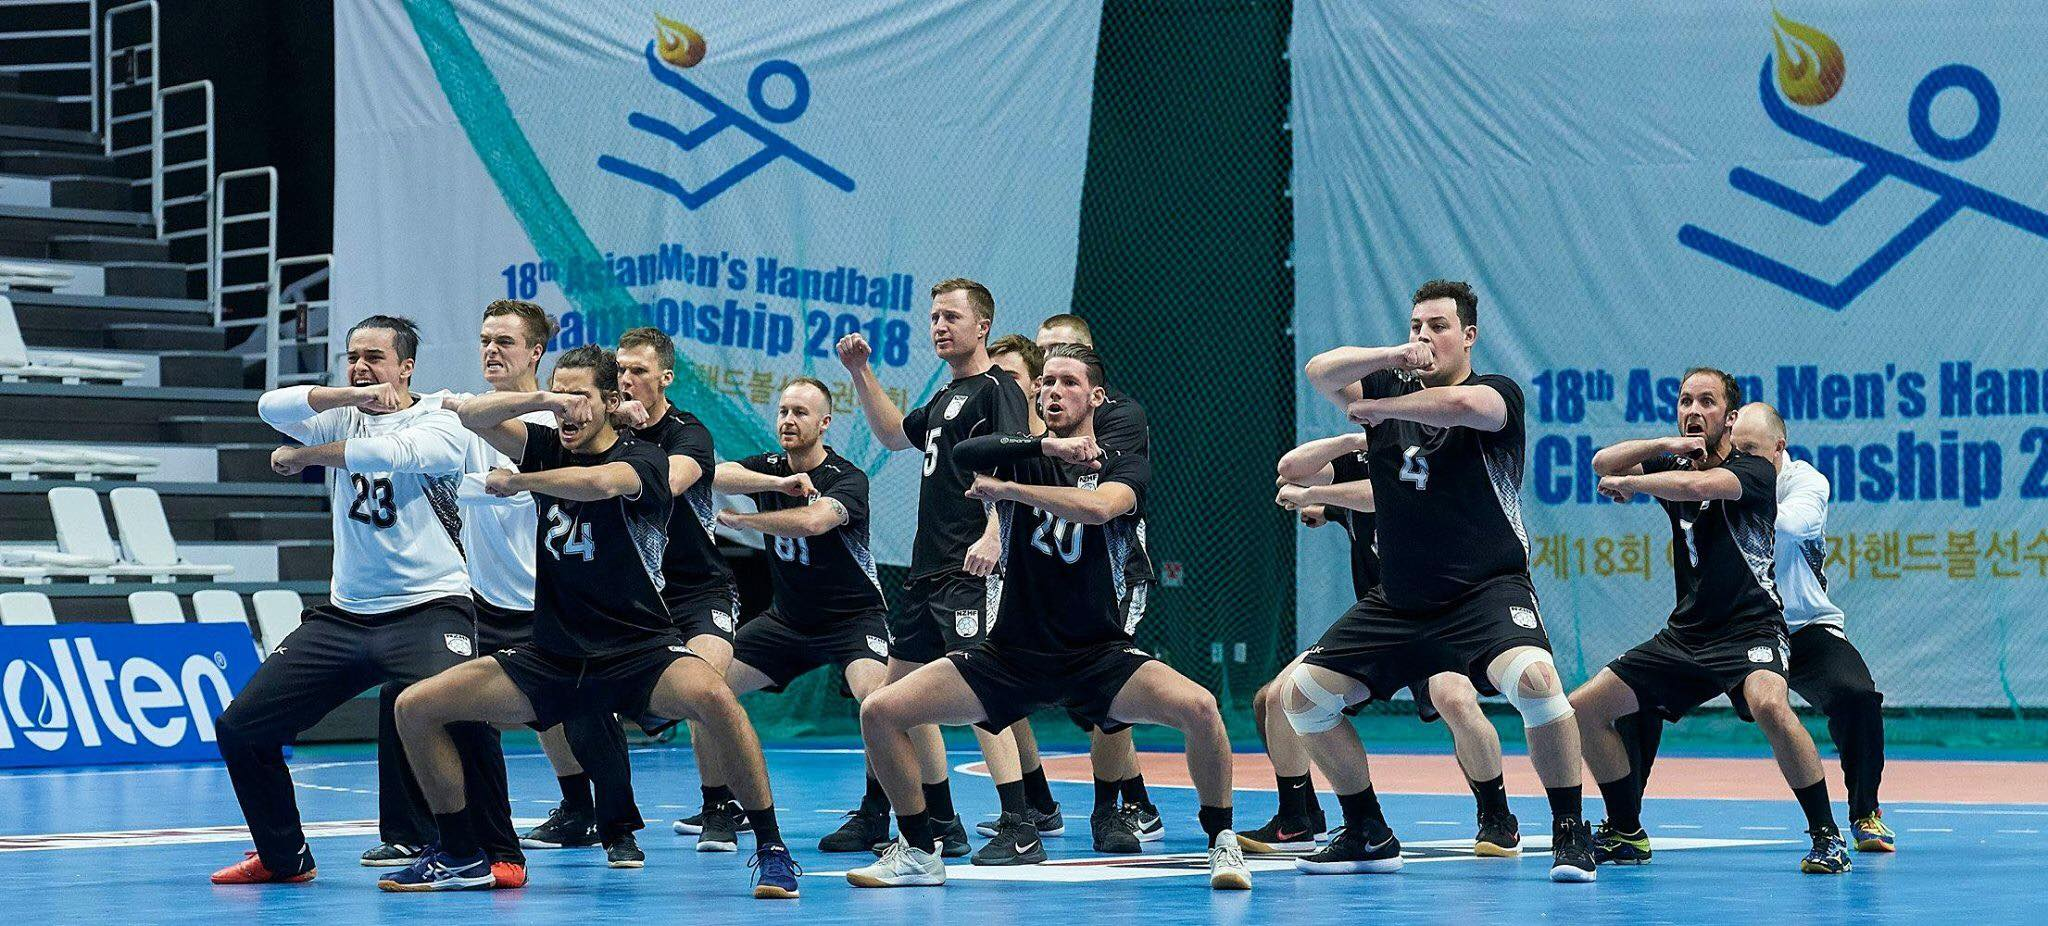 Mens Team perform the Haka at Asian Champs 2018 South Korea.jpg